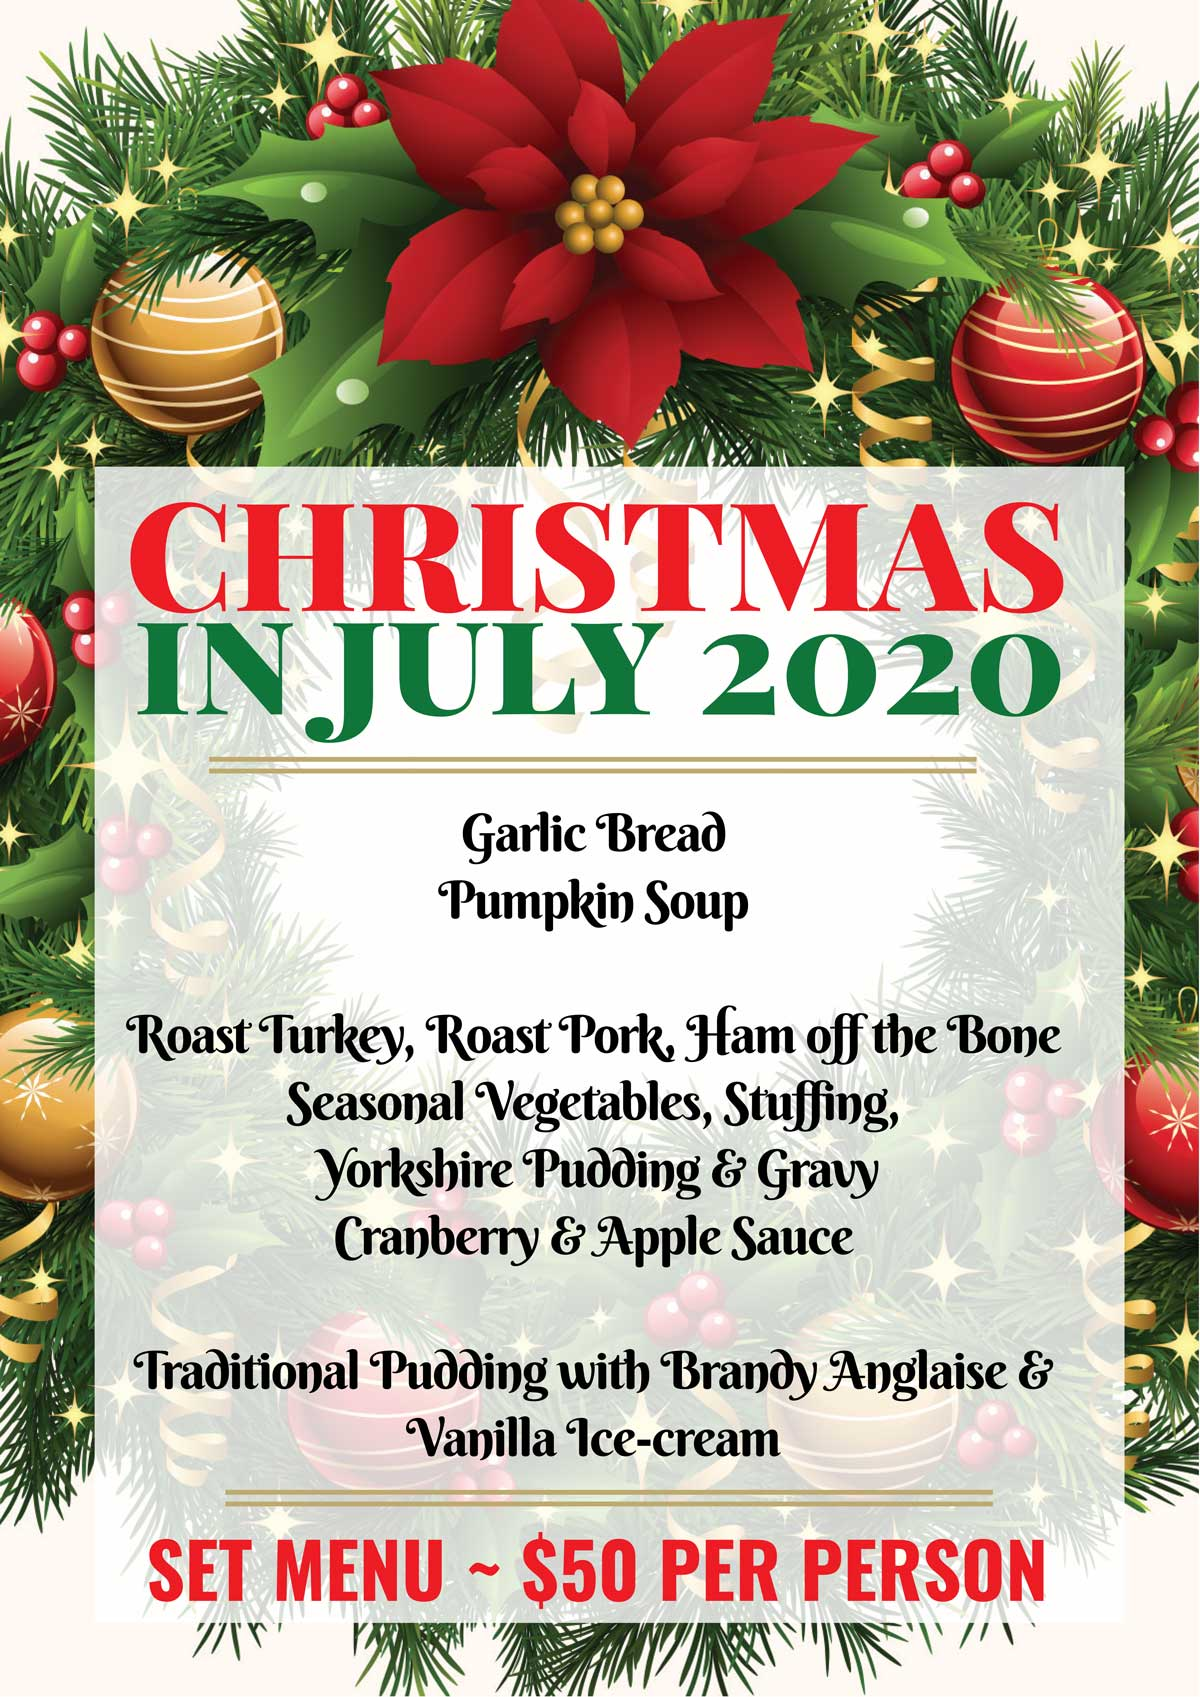 XMAS-IN-JULY-2020-DARCY-ARMS